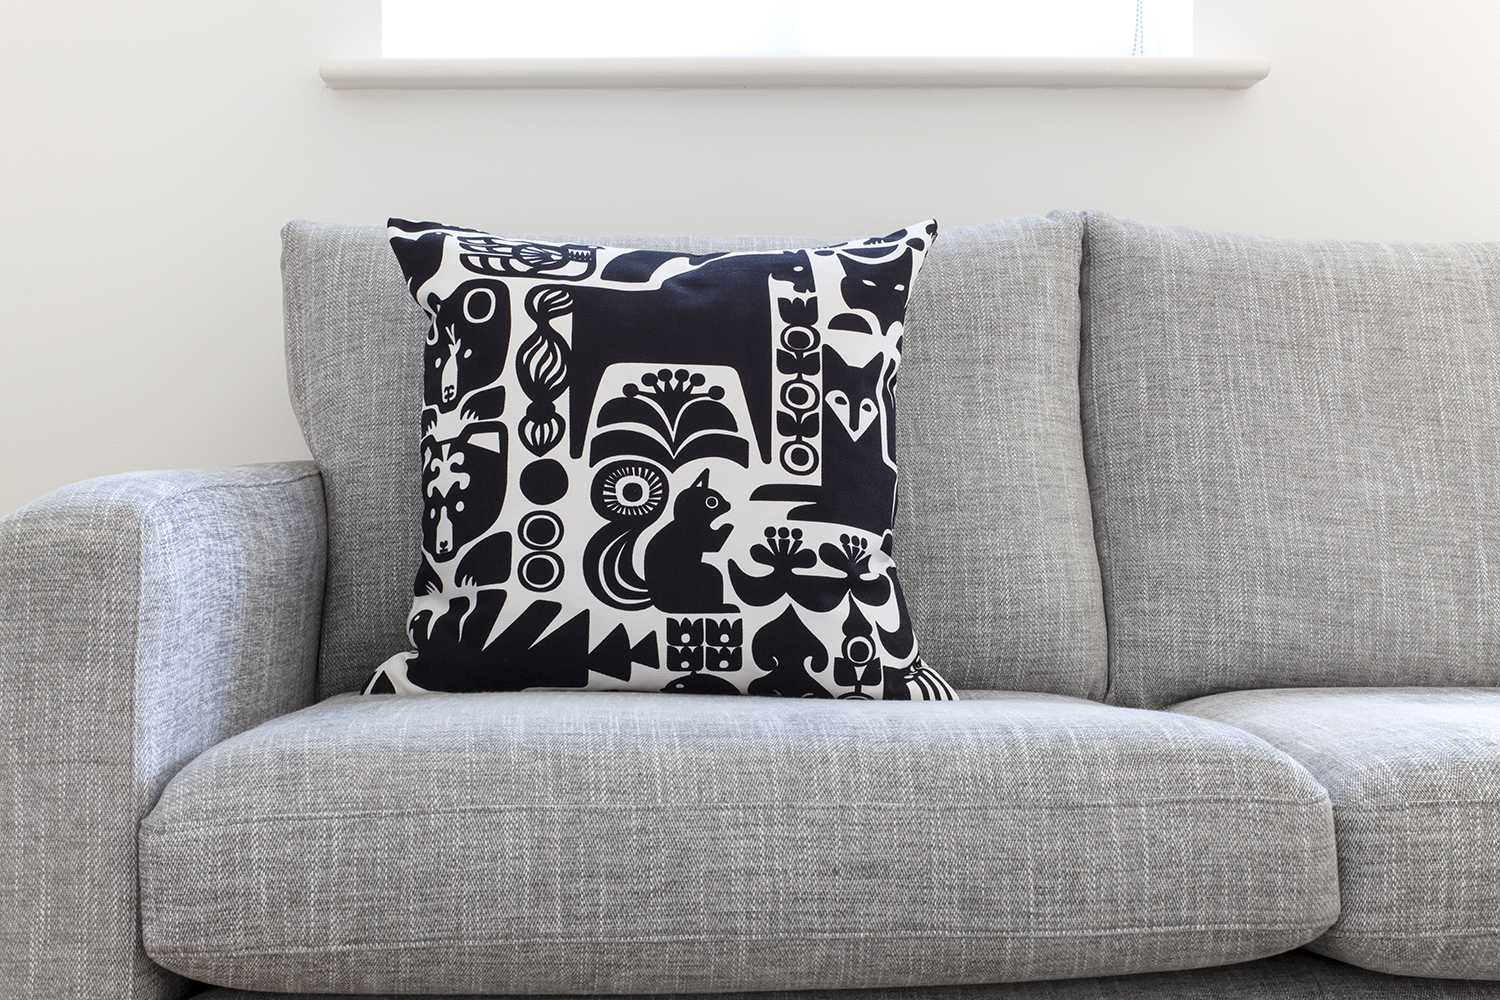 Decluttering My Home: My Journey to Minimalism | natashadenness.co.uk (photo of a grey sofa and cushion)